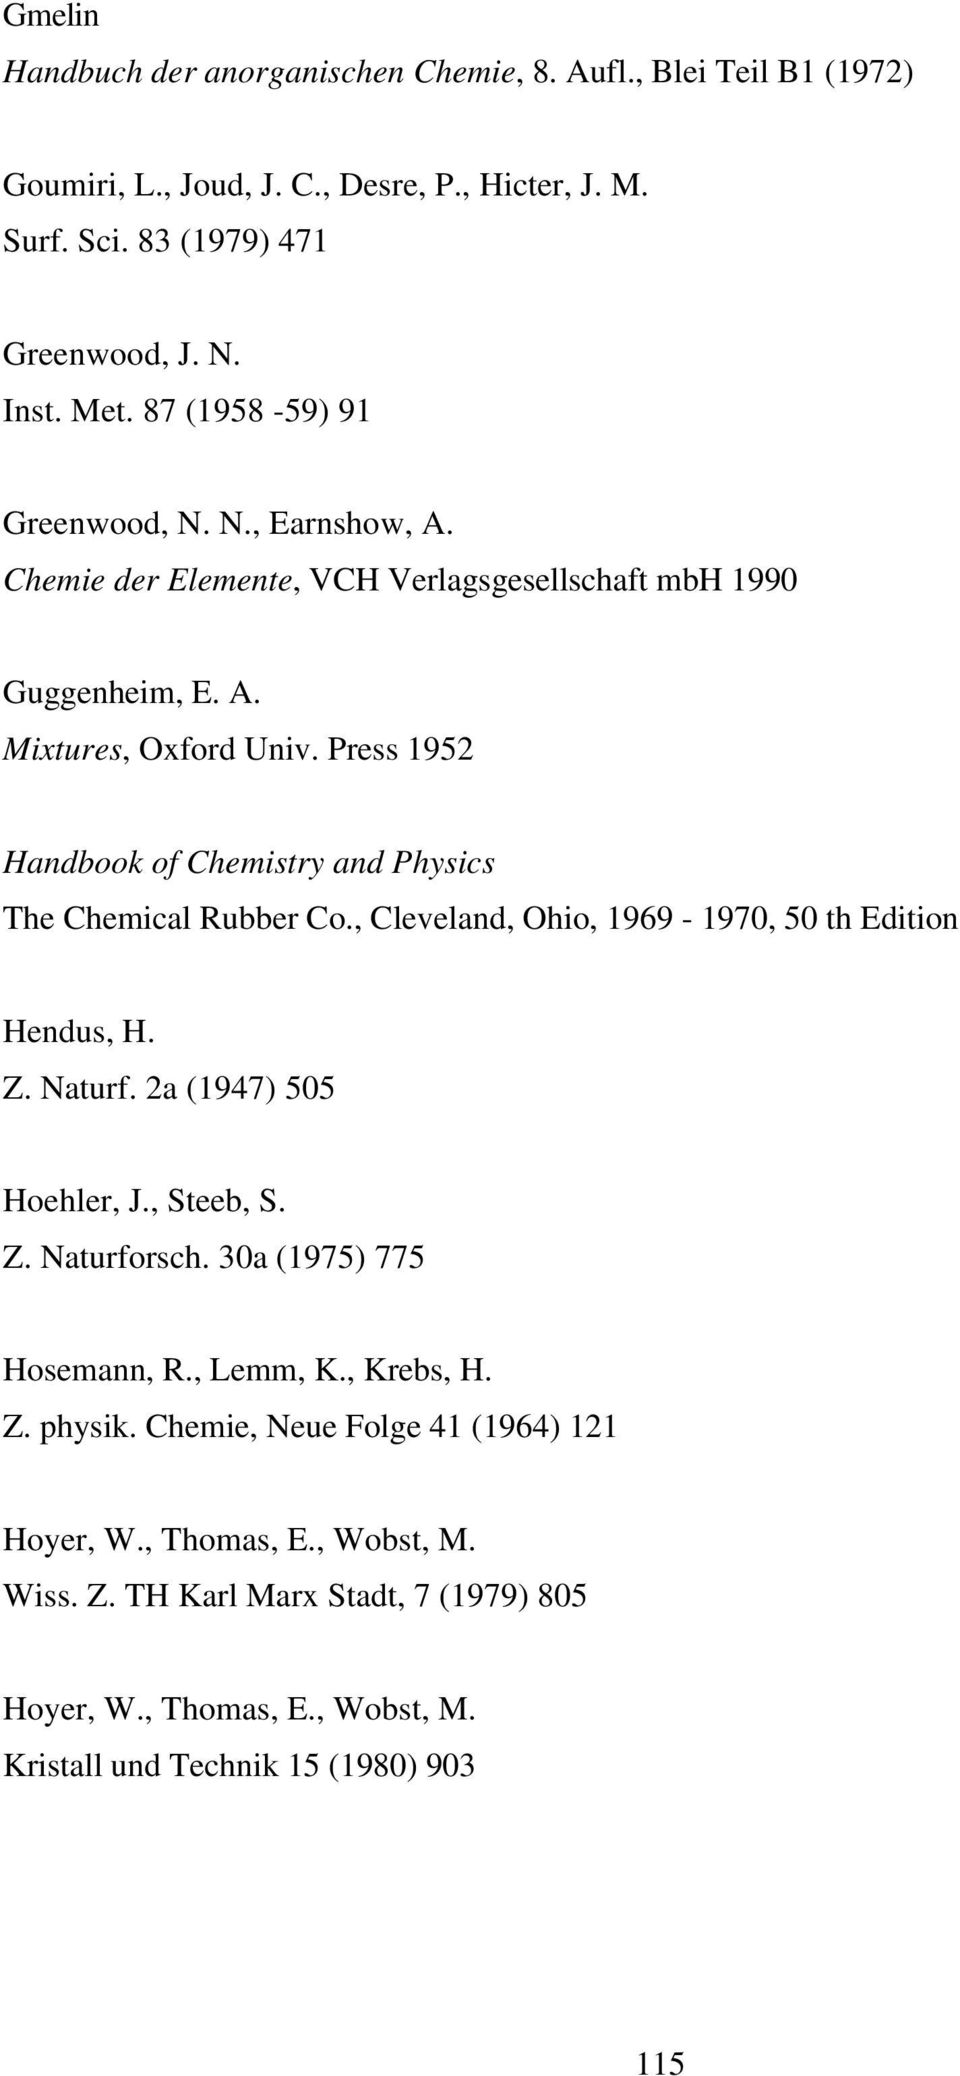 Press 1952 Handbook of Chemistry and Physics The Chemical Rubber Co., Cleveland, Ohio, 1969-1970, 50 th Edition Hendus, H. Z. Naturf. 2a (1947) 505 Hoehler, J., Steeb, S. Z. Naturforsch.